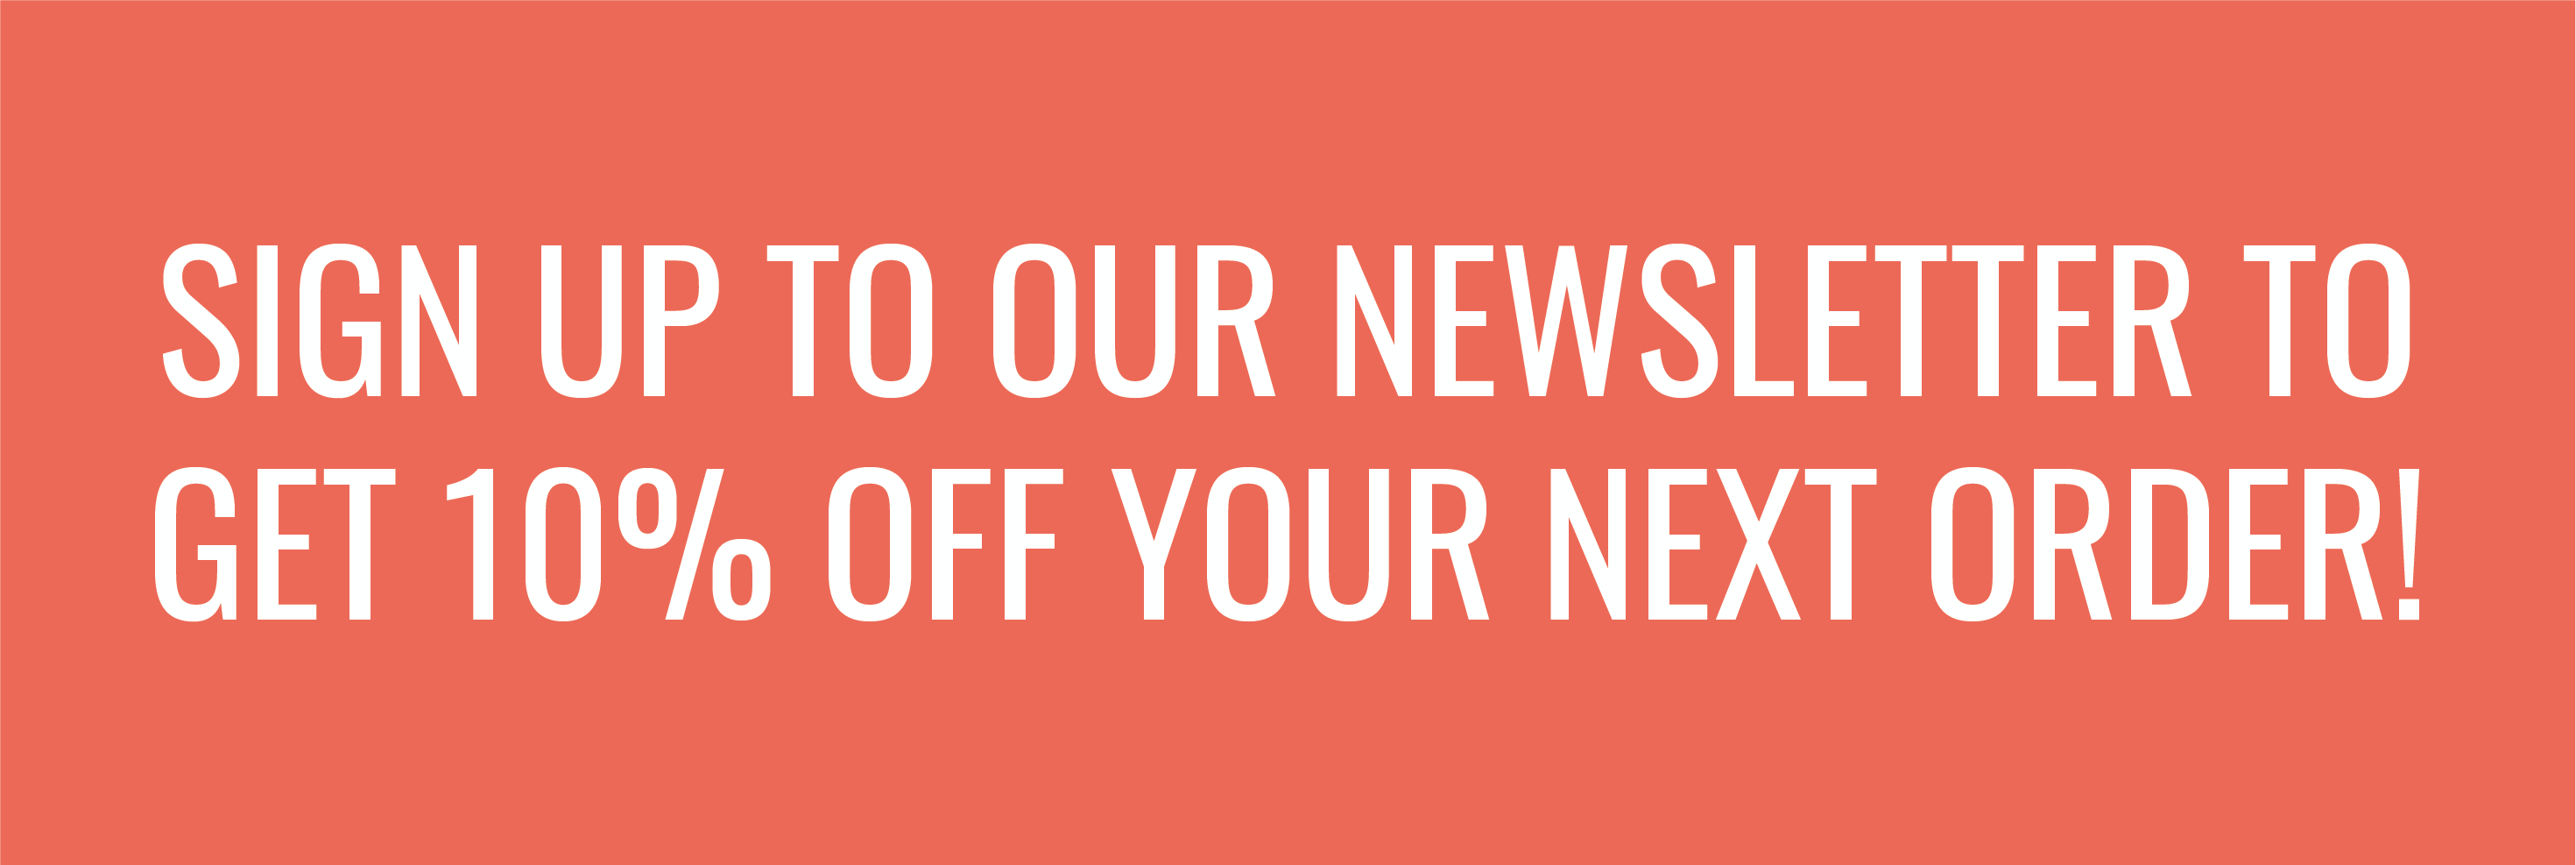 Sign up to our newsletter to get 10% off your next order!